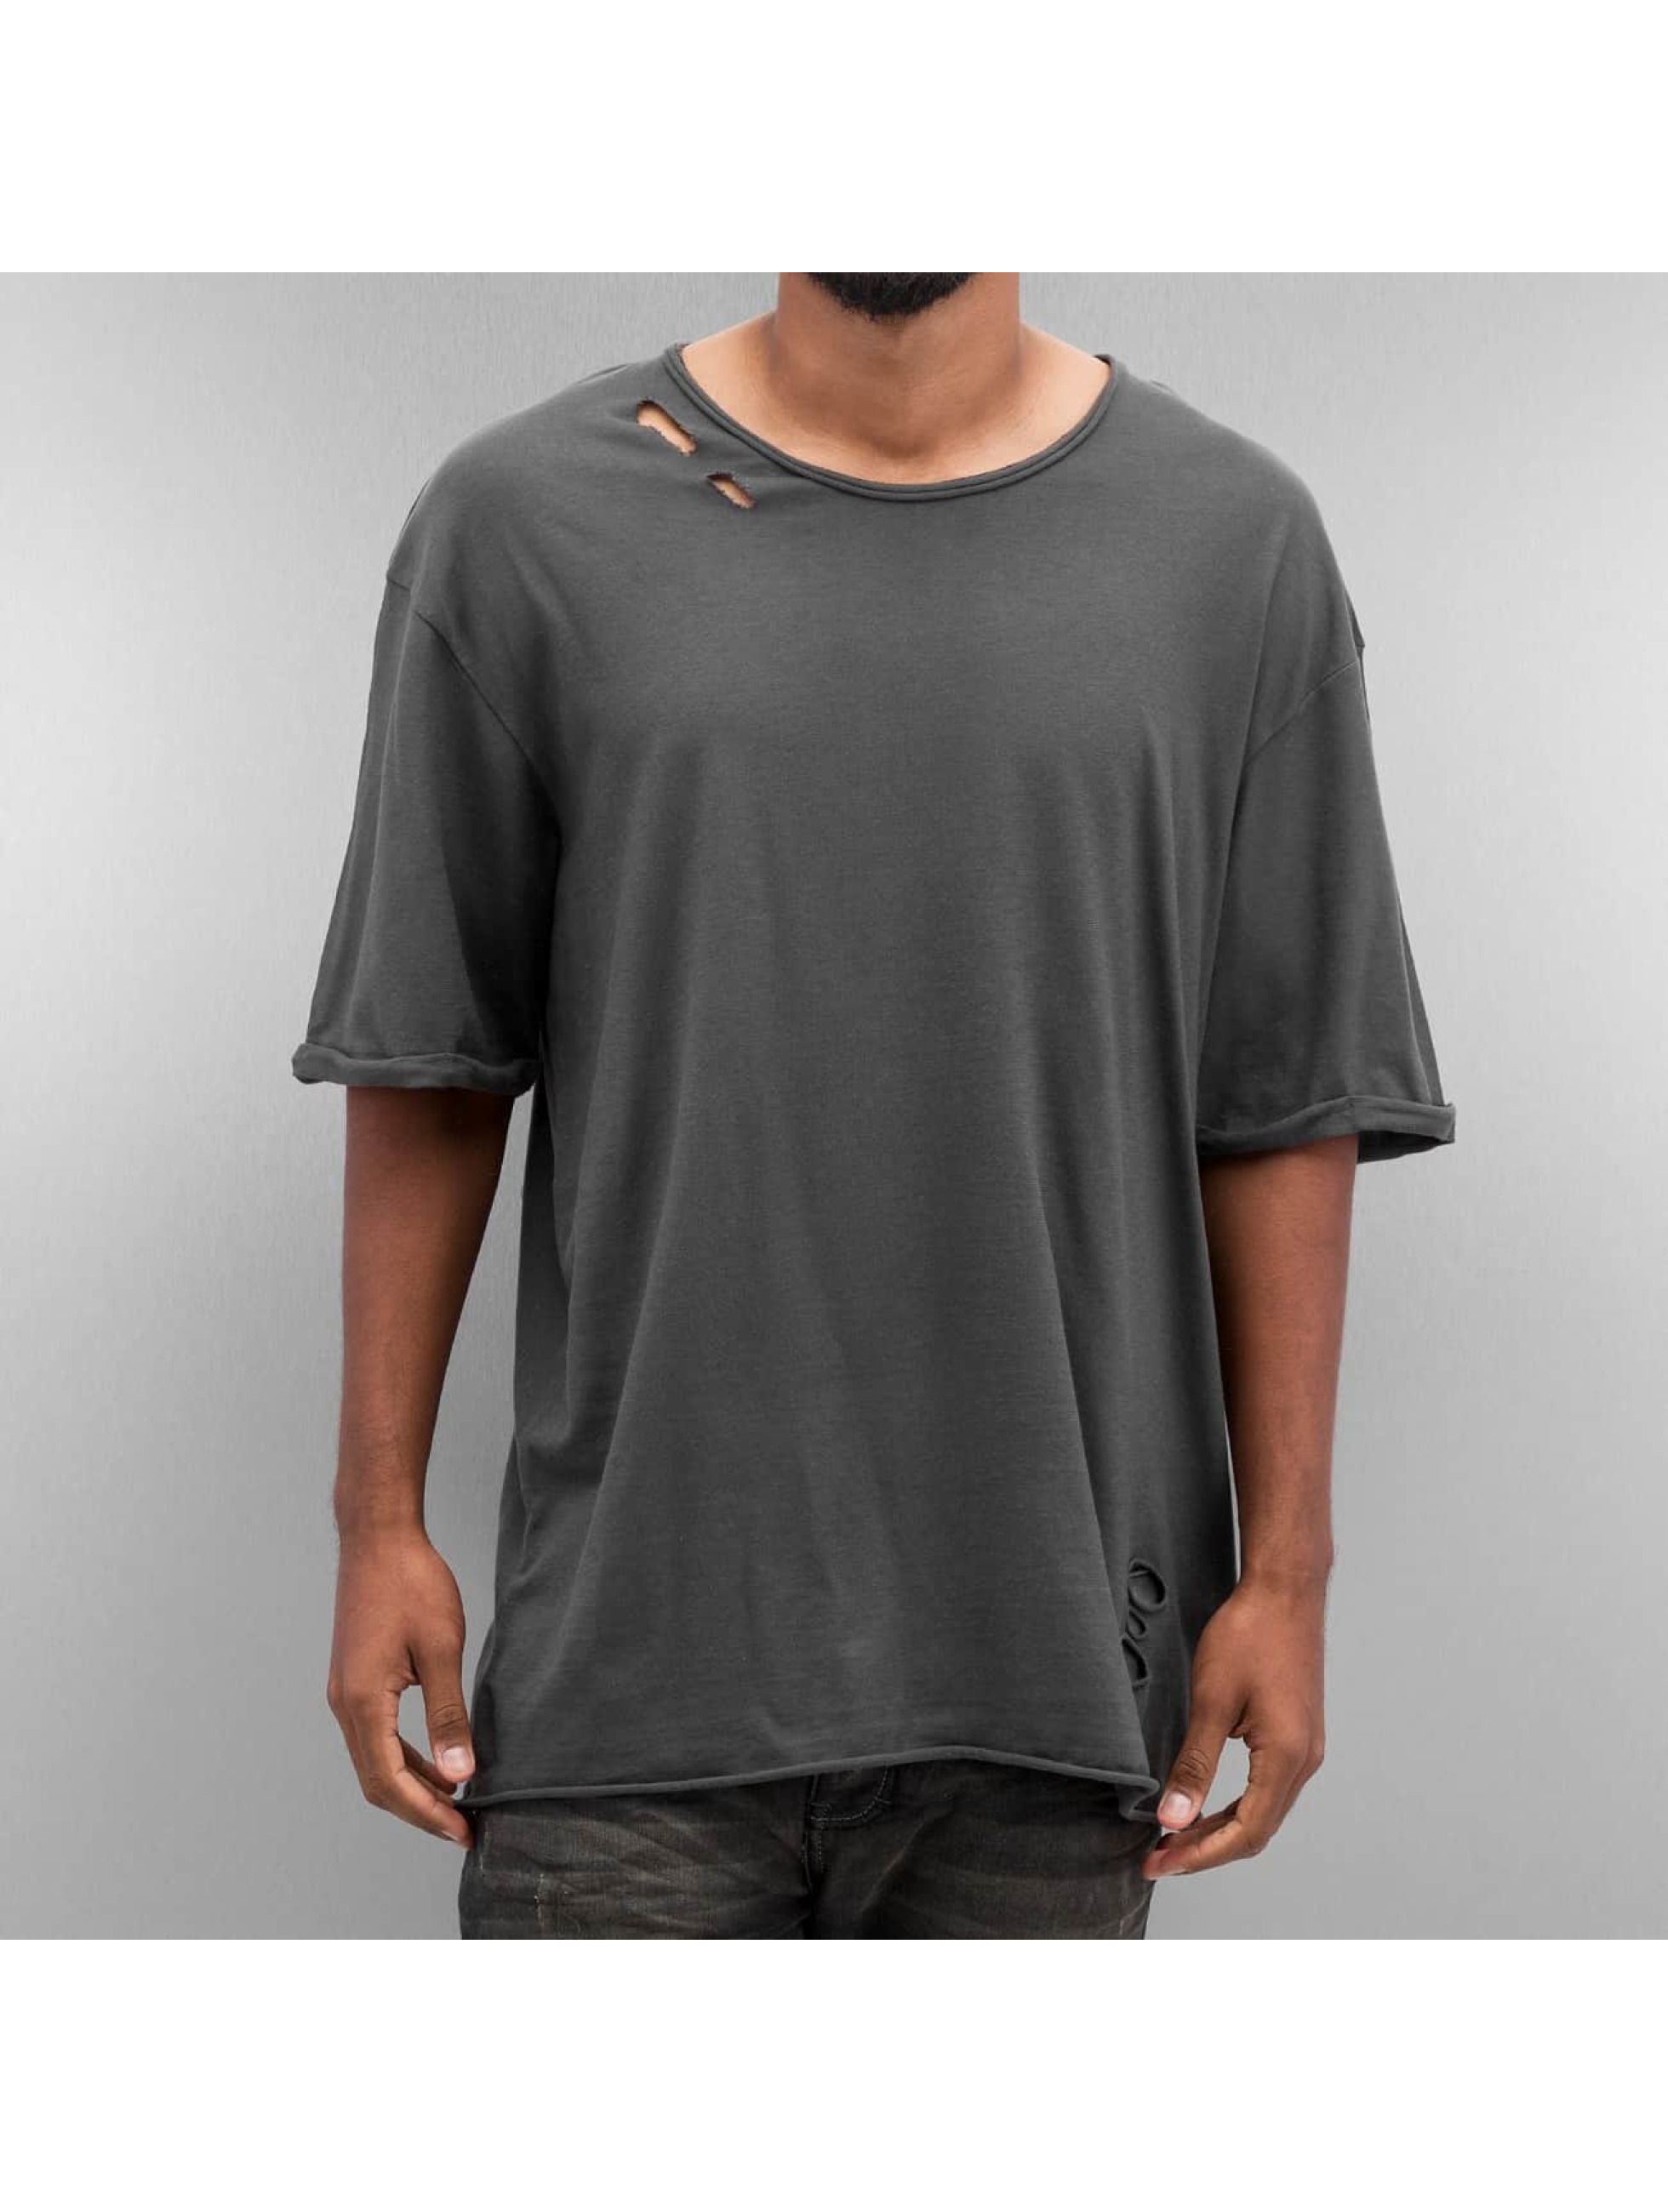 Jack & Jones T-Shirt jorEast grau